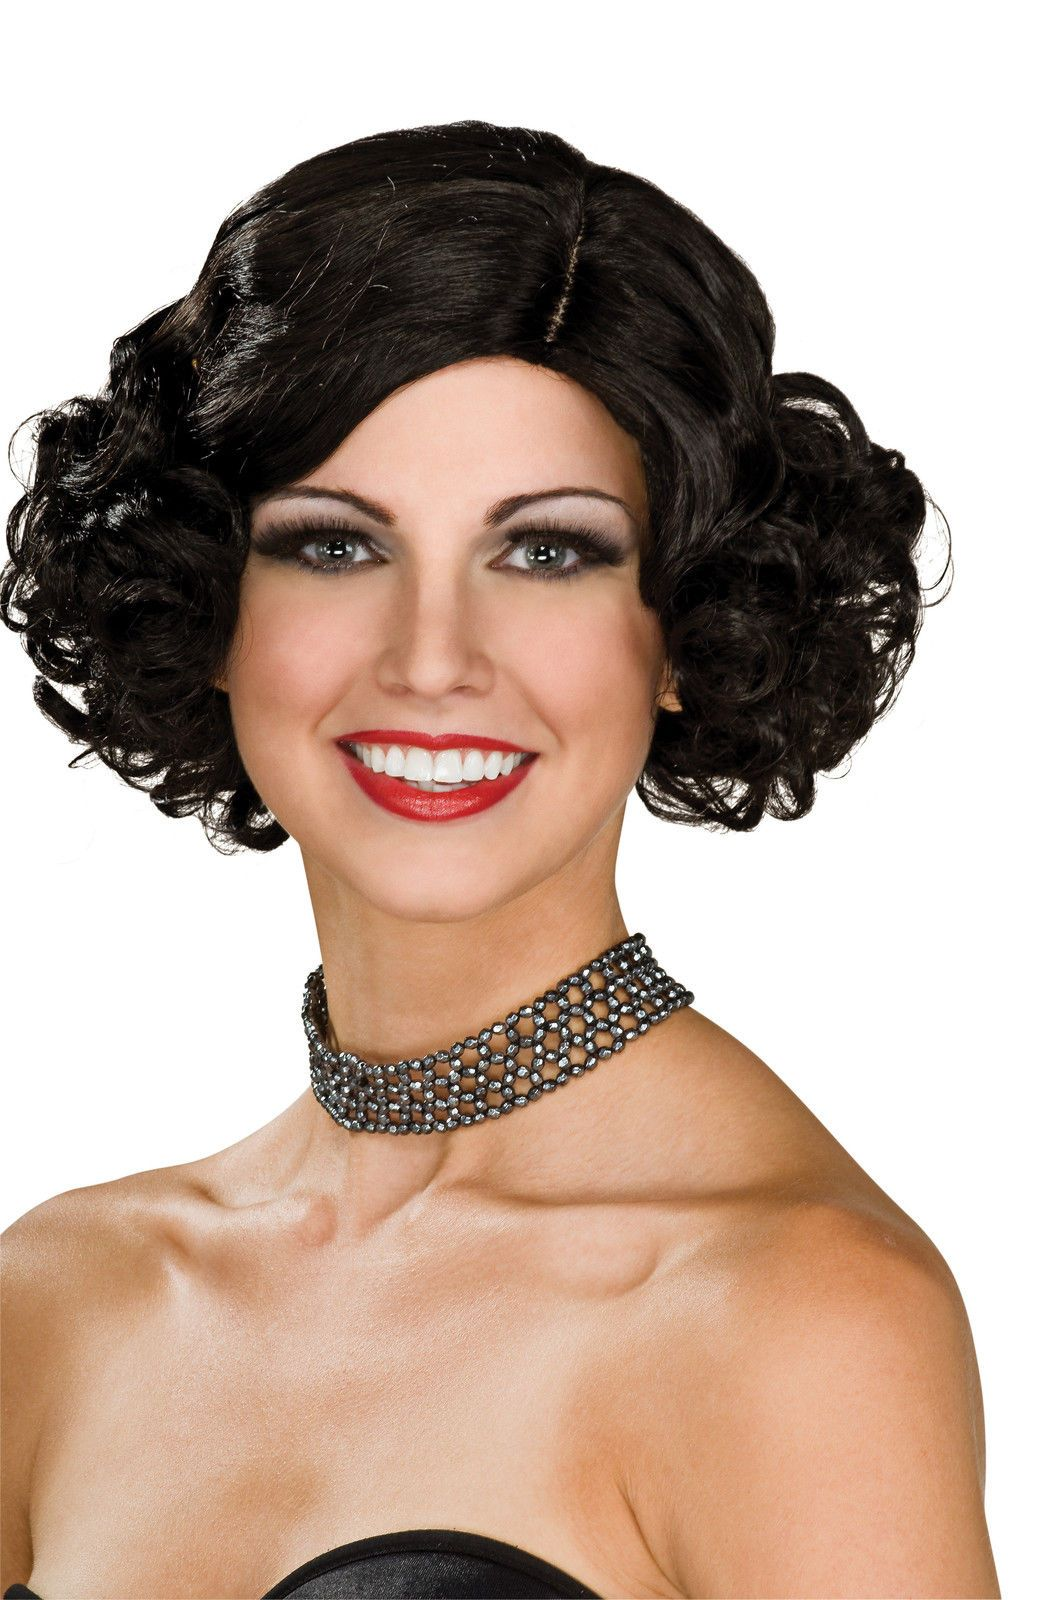 Details about Womens Short Curly Black Wig Flapper 20s